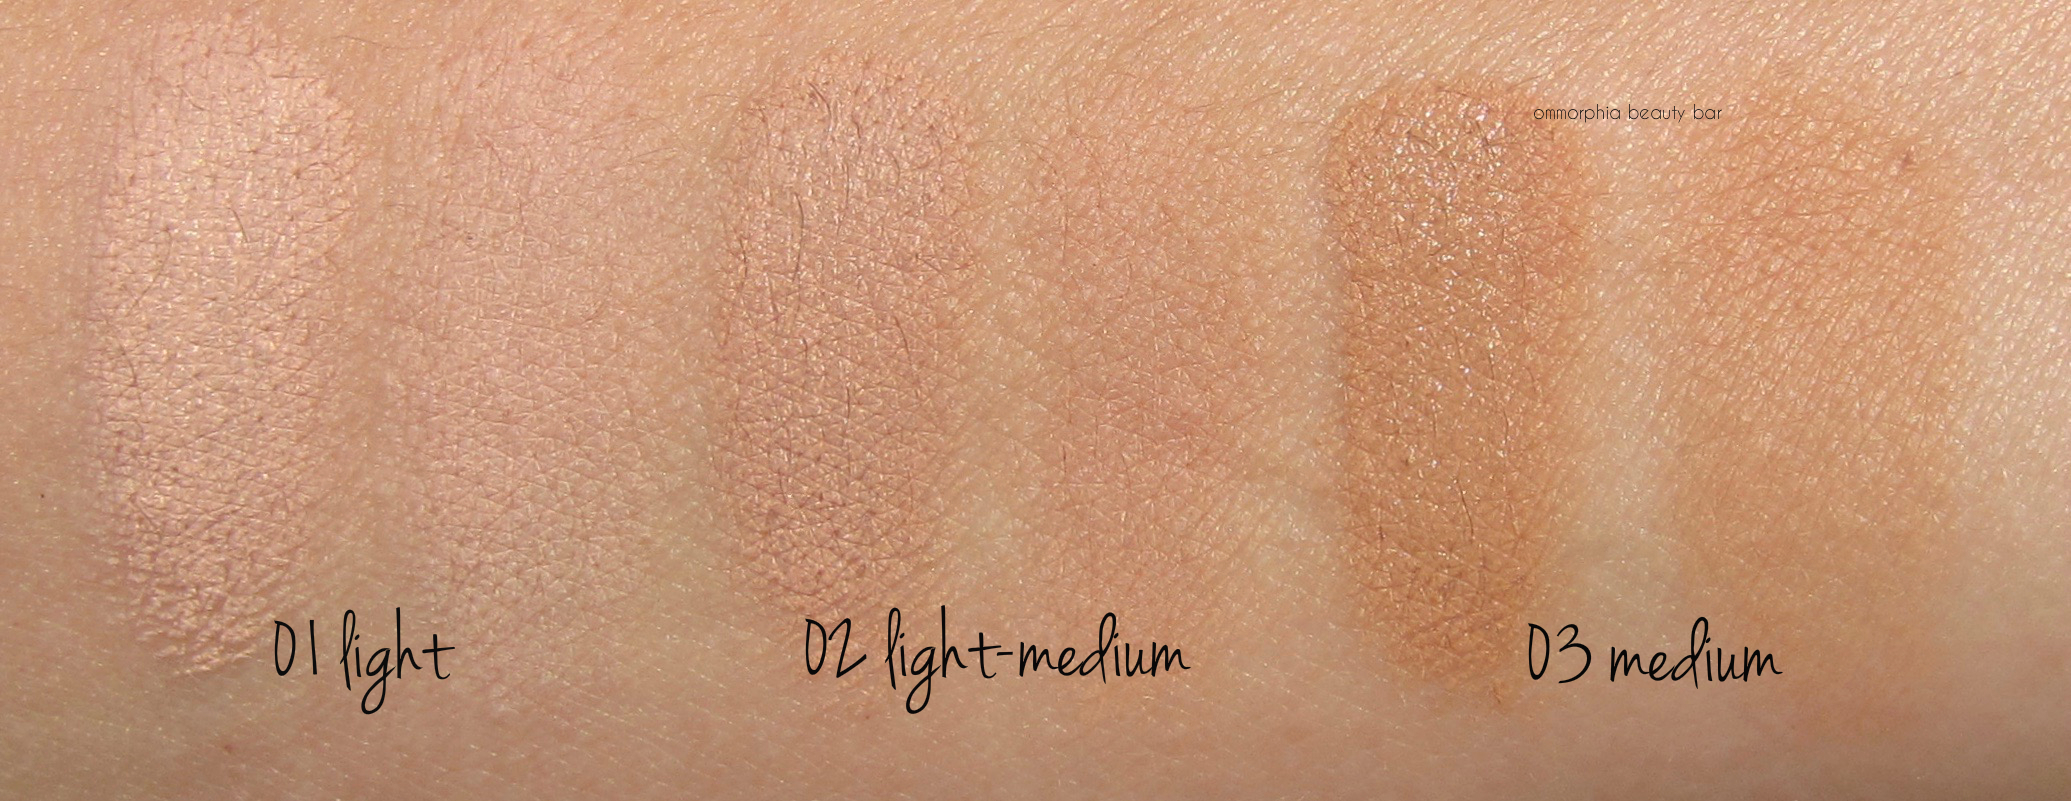 Benefit · An Erase Case of Boiing Concealers | ommorphia beauty bar